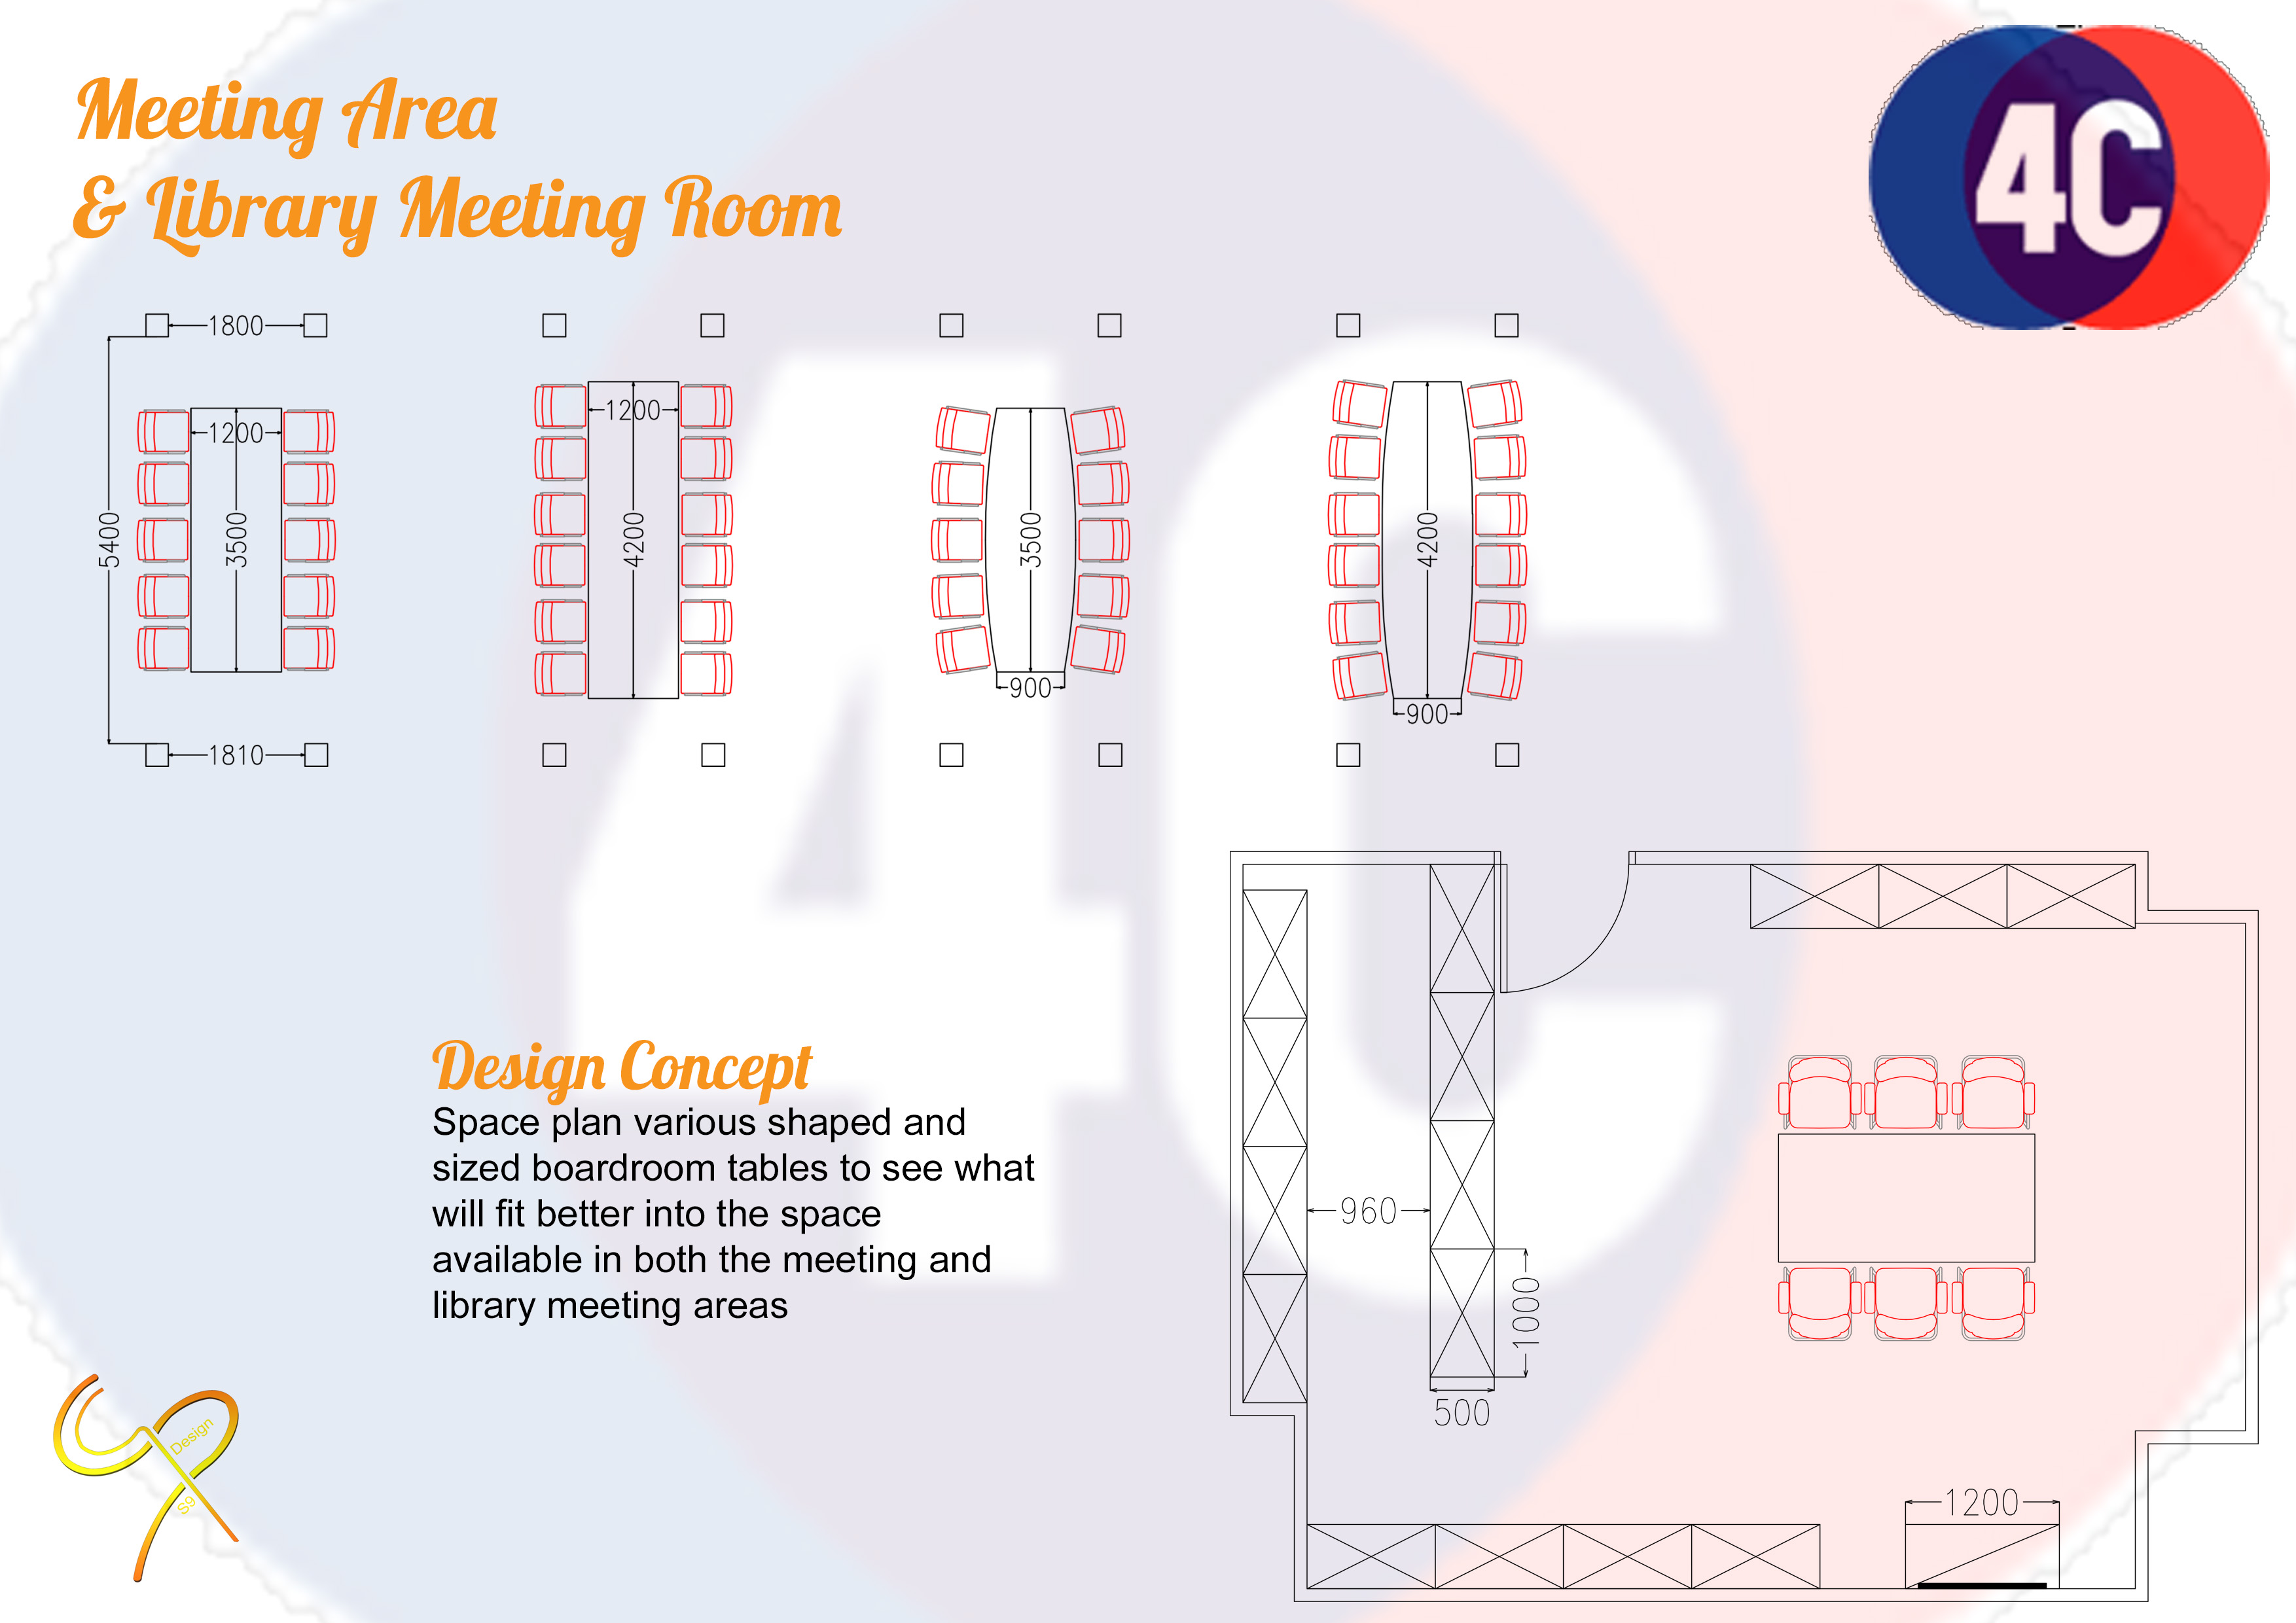 4C Group - Meeting Area